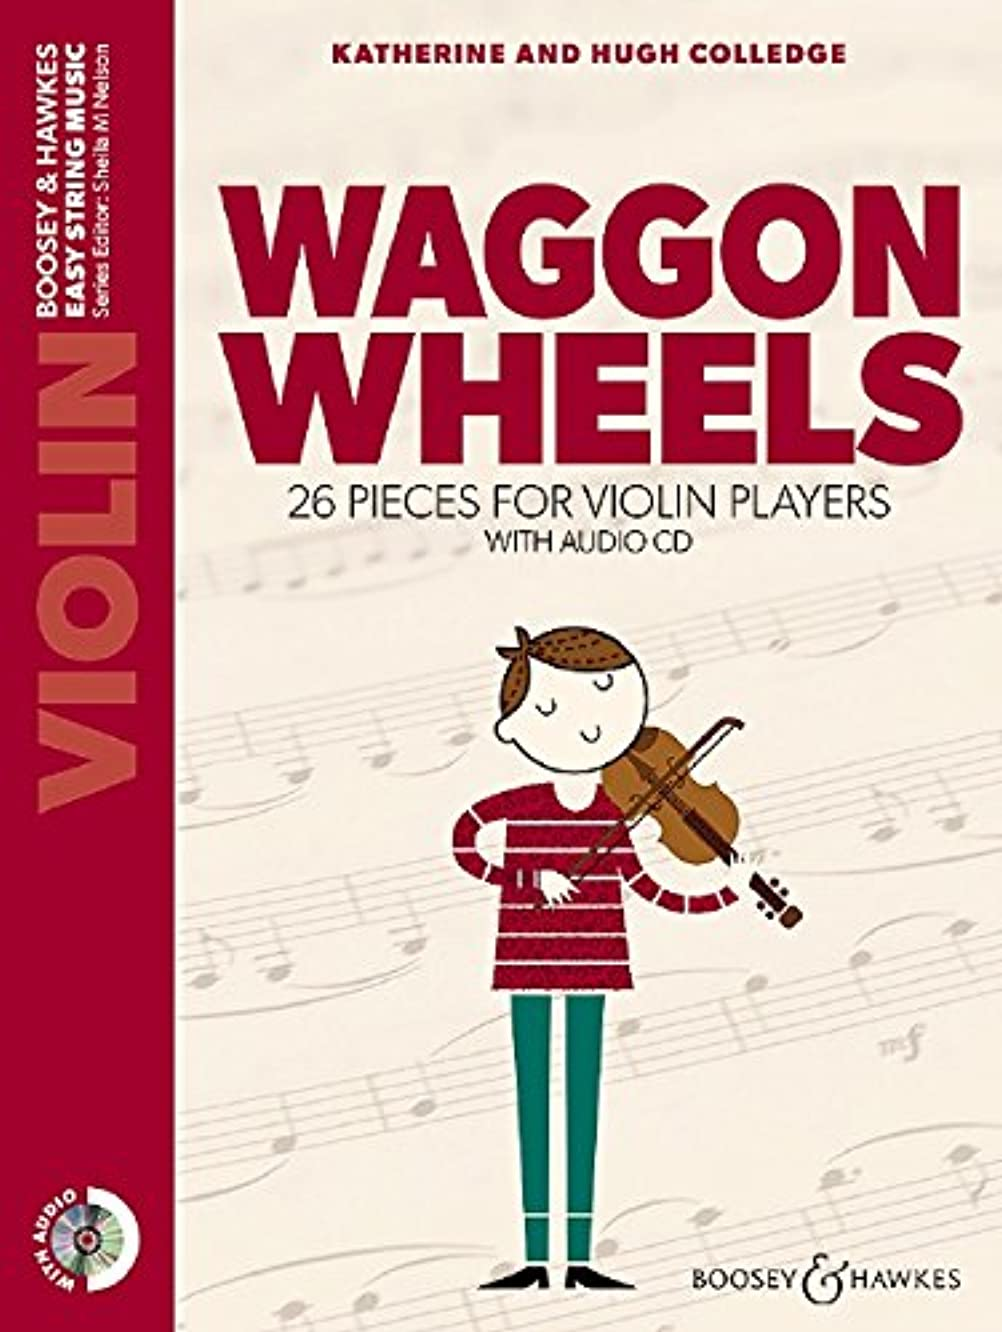 Waggon Wheels - 26 Pieces for Violin Players - Easy String Music - Edition with CD - BH13422